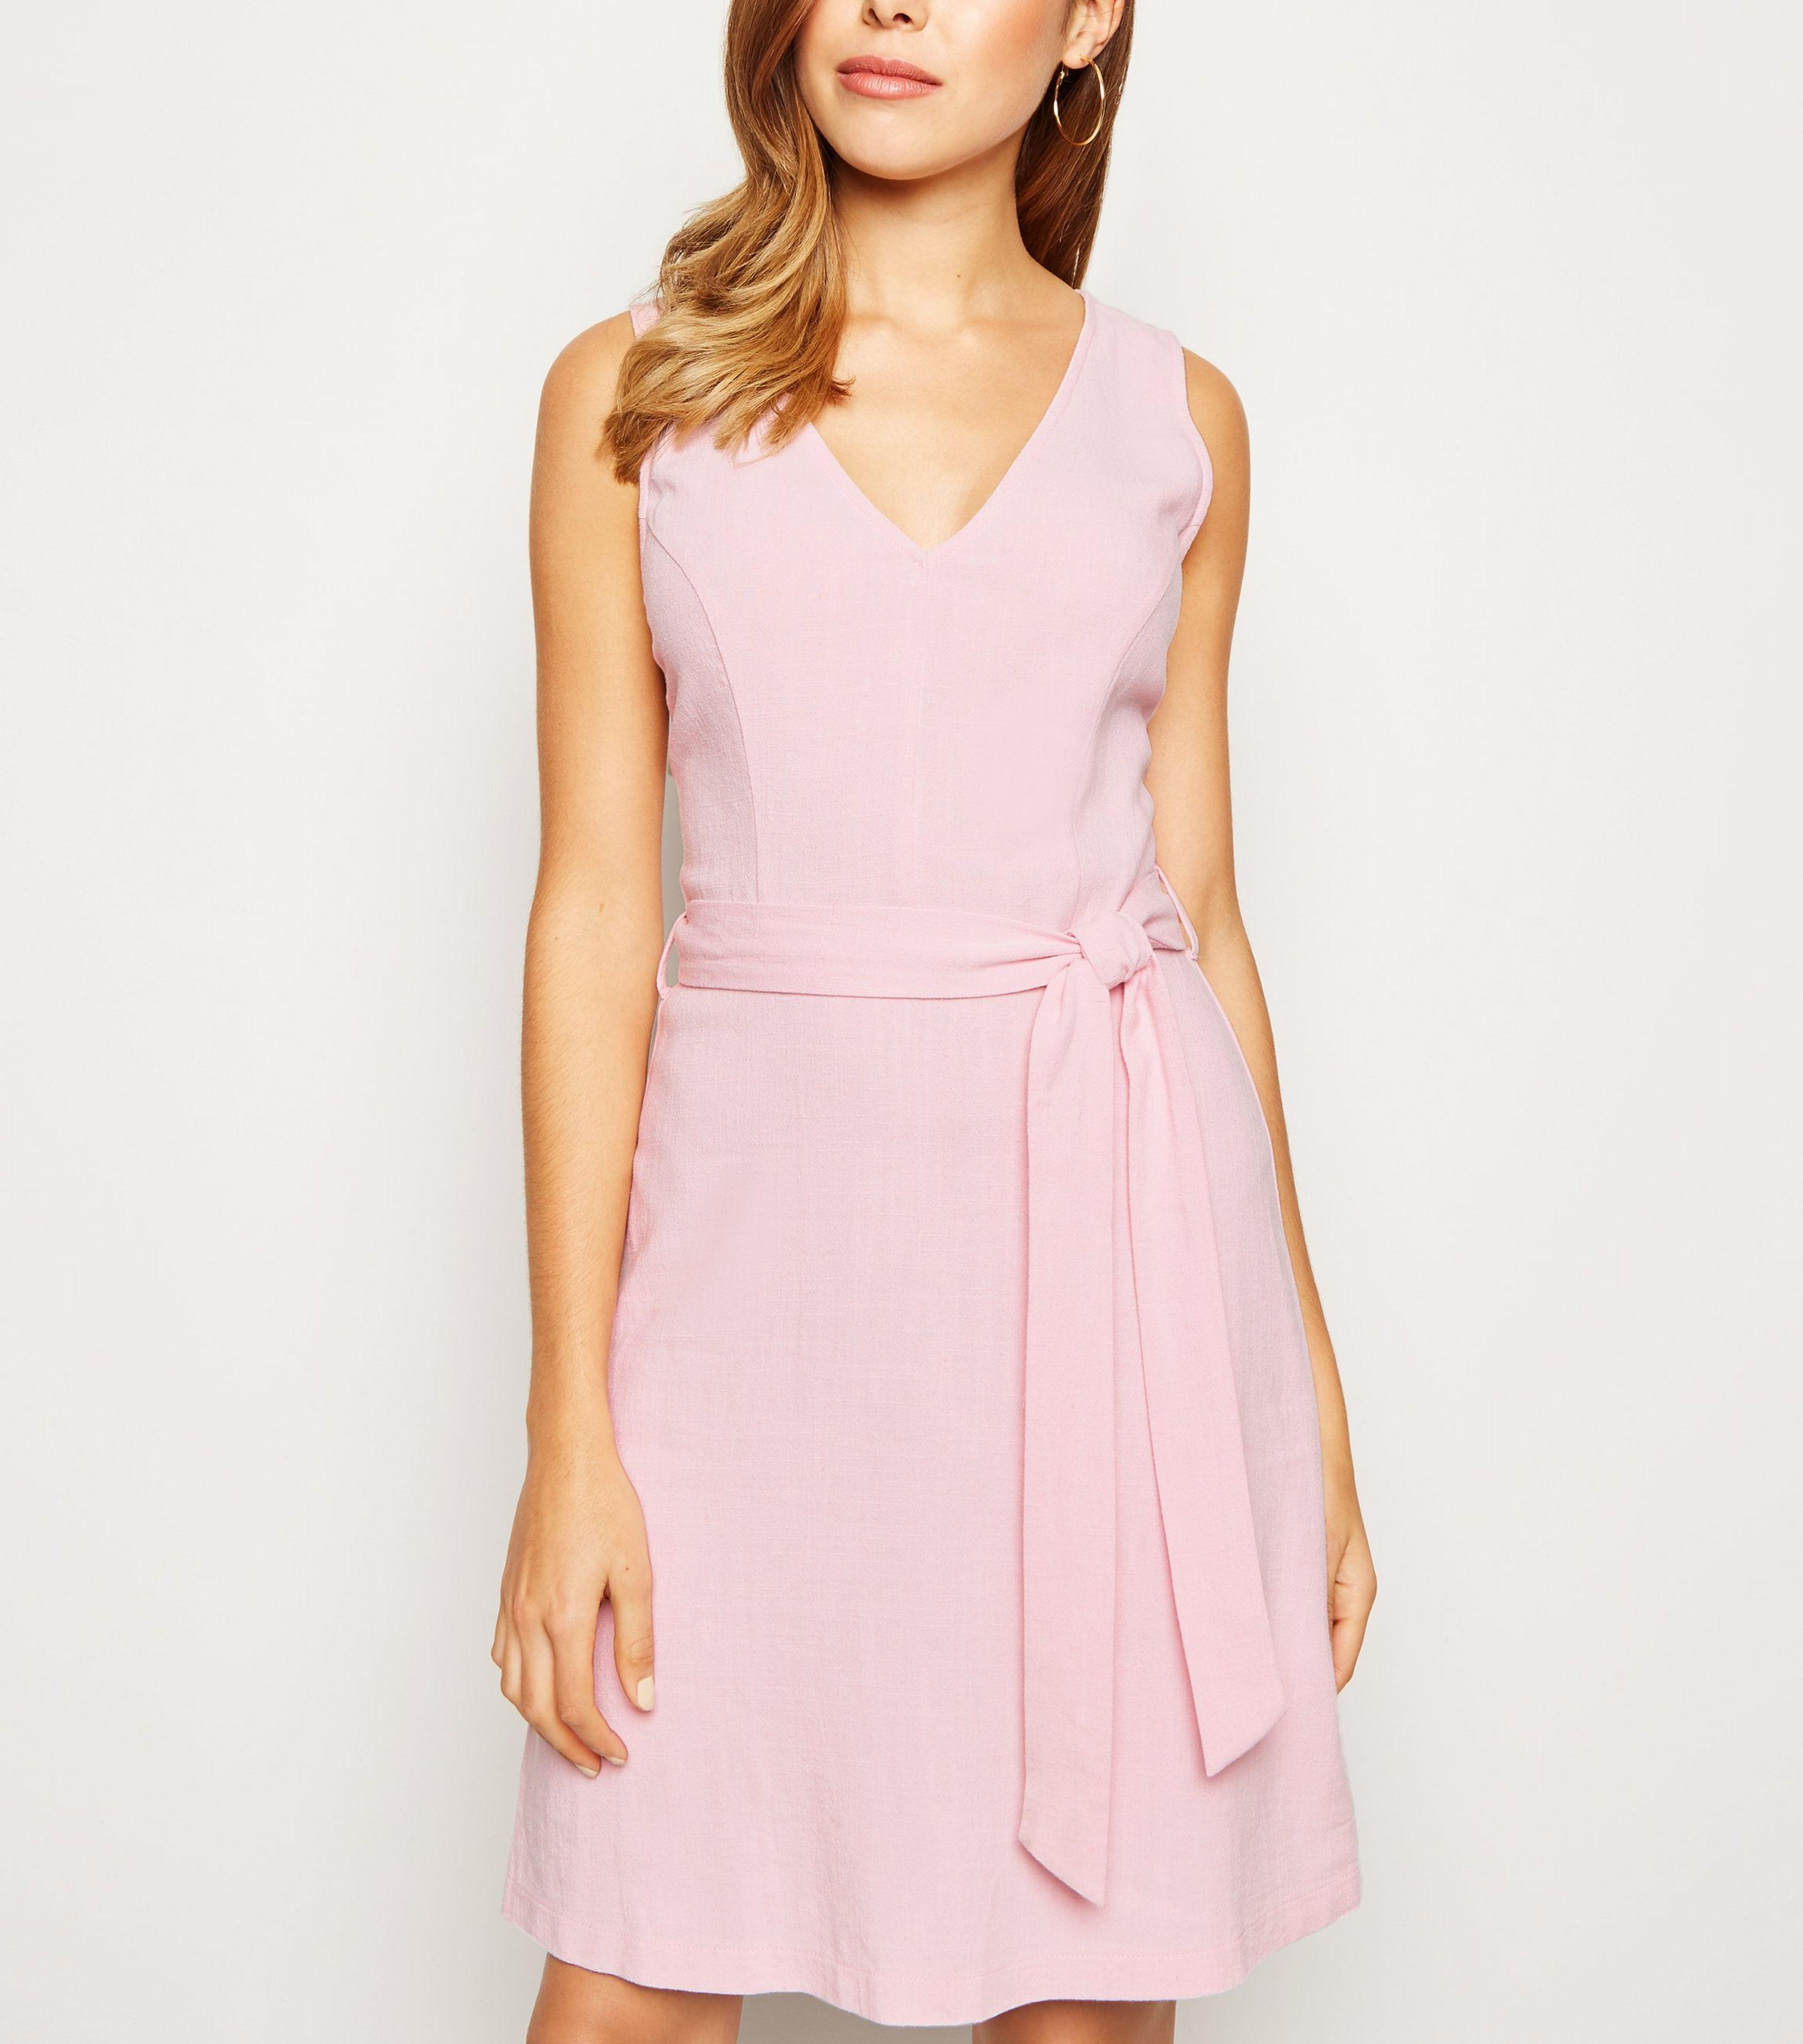 f09a7240eee New Look Pink Linen Look Belted Pinafore Dress in Pink - Lyst